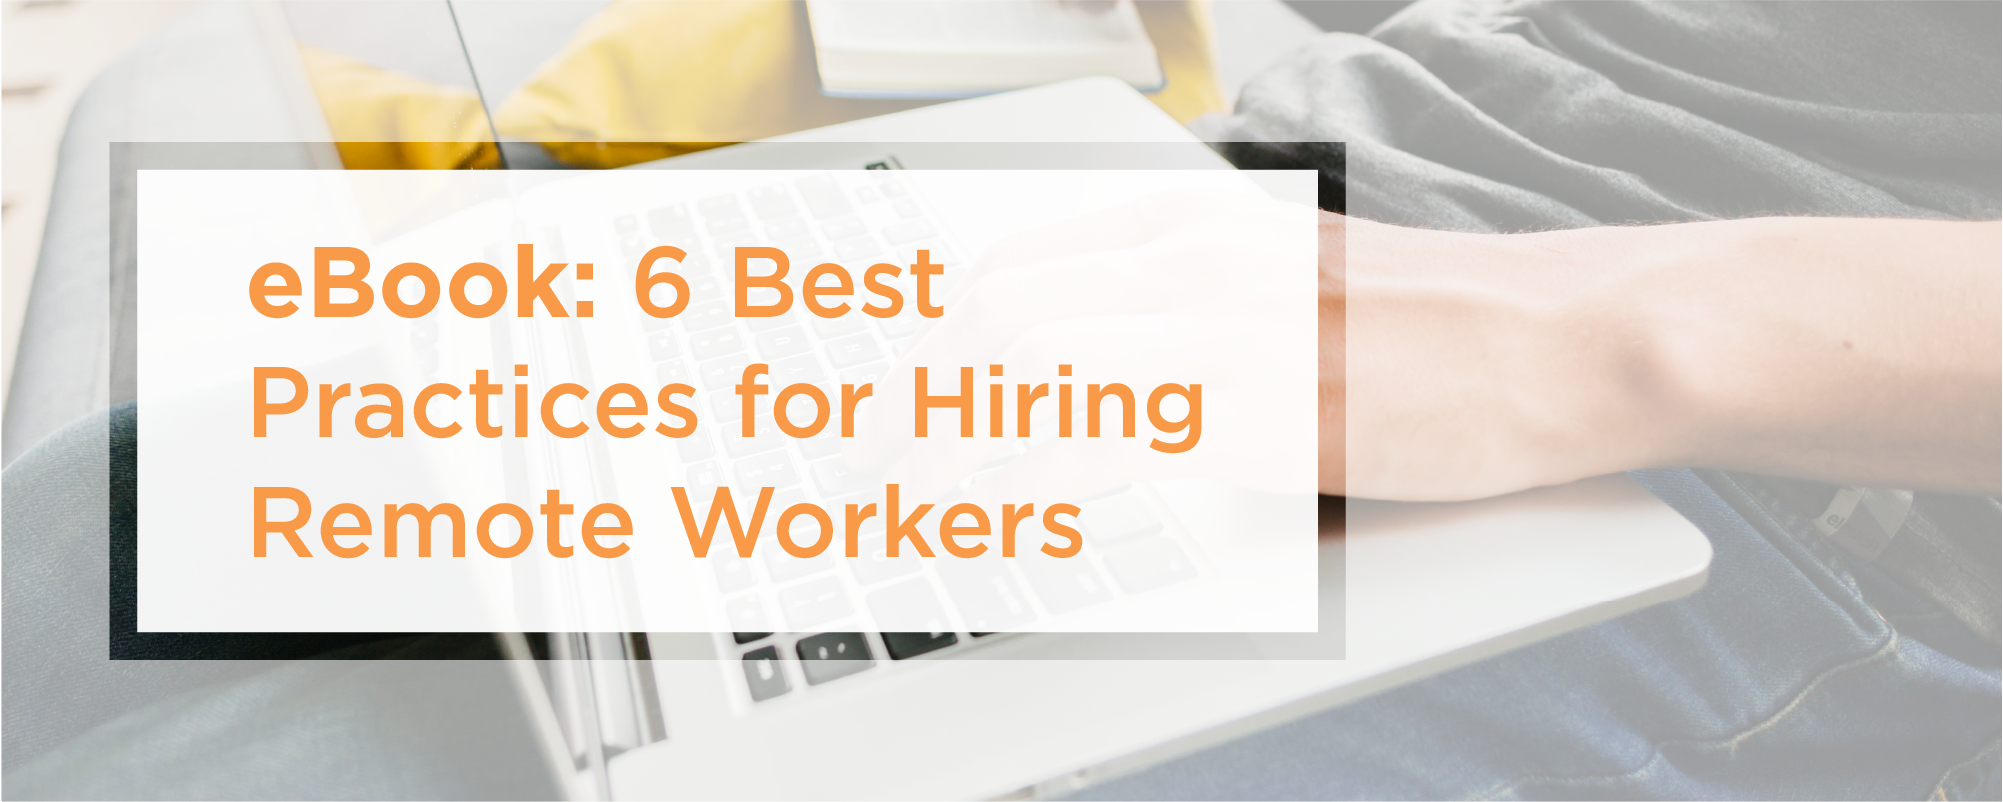 6 best practices for hiring remote workers.